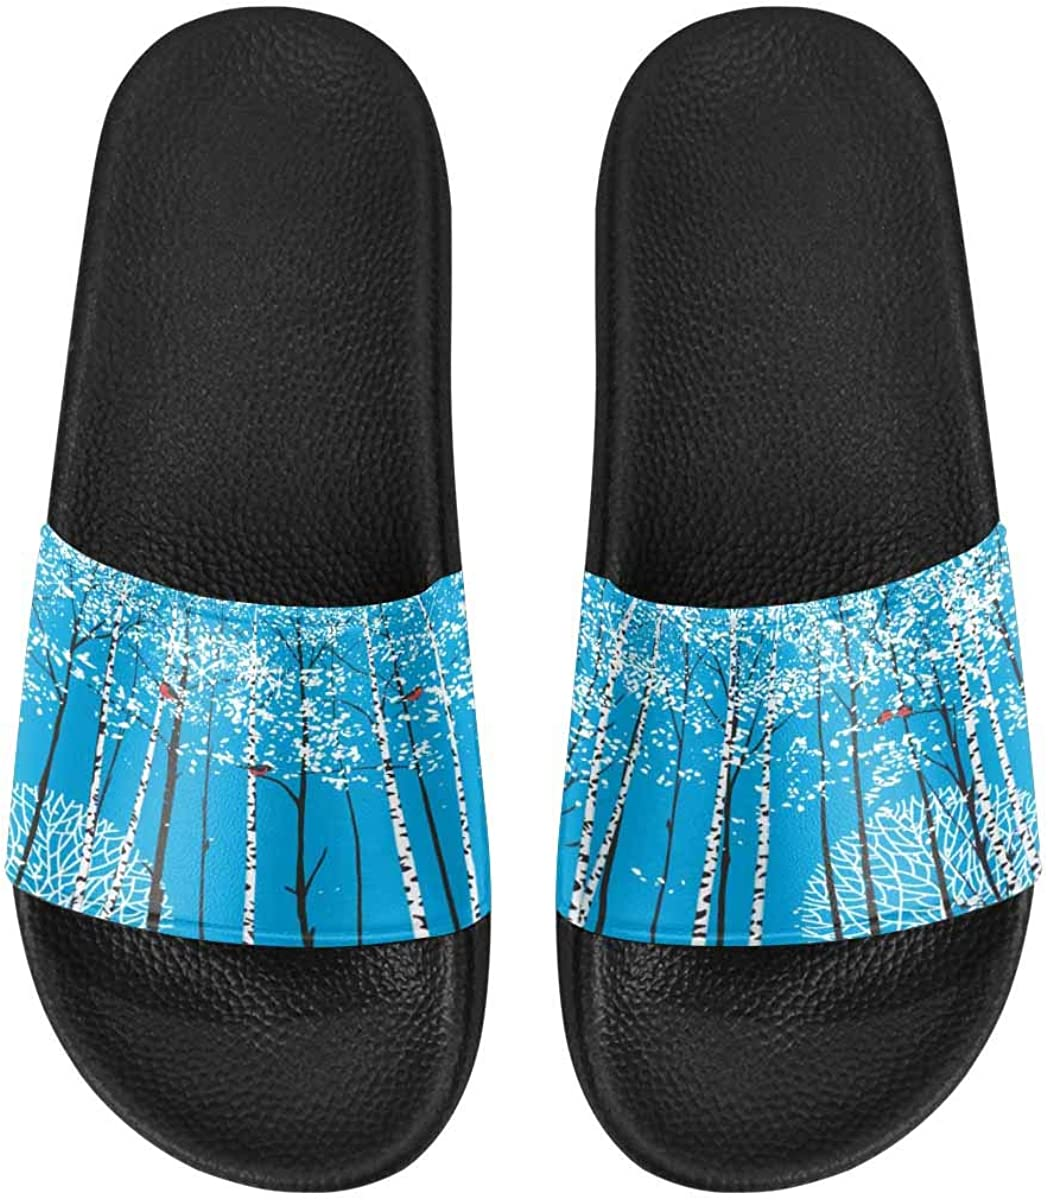 InterestPrint Women's Casual and Lightweight Slipper Sandals for Home Big Red Heart Shaped